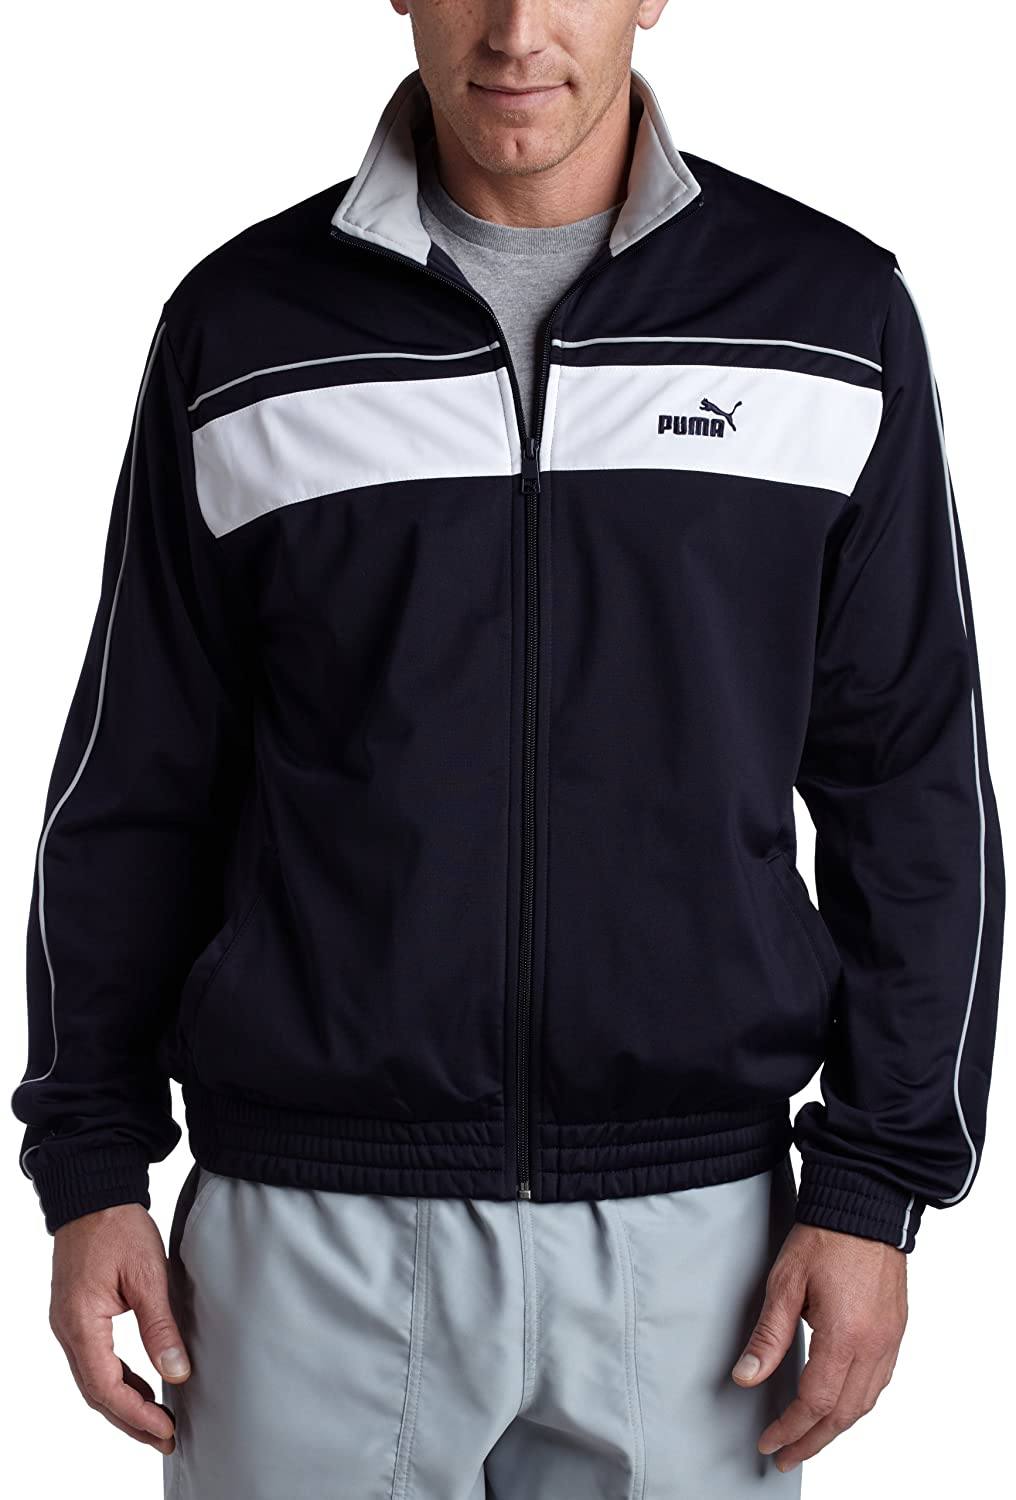 PUMA Men's Agile Track Jacket